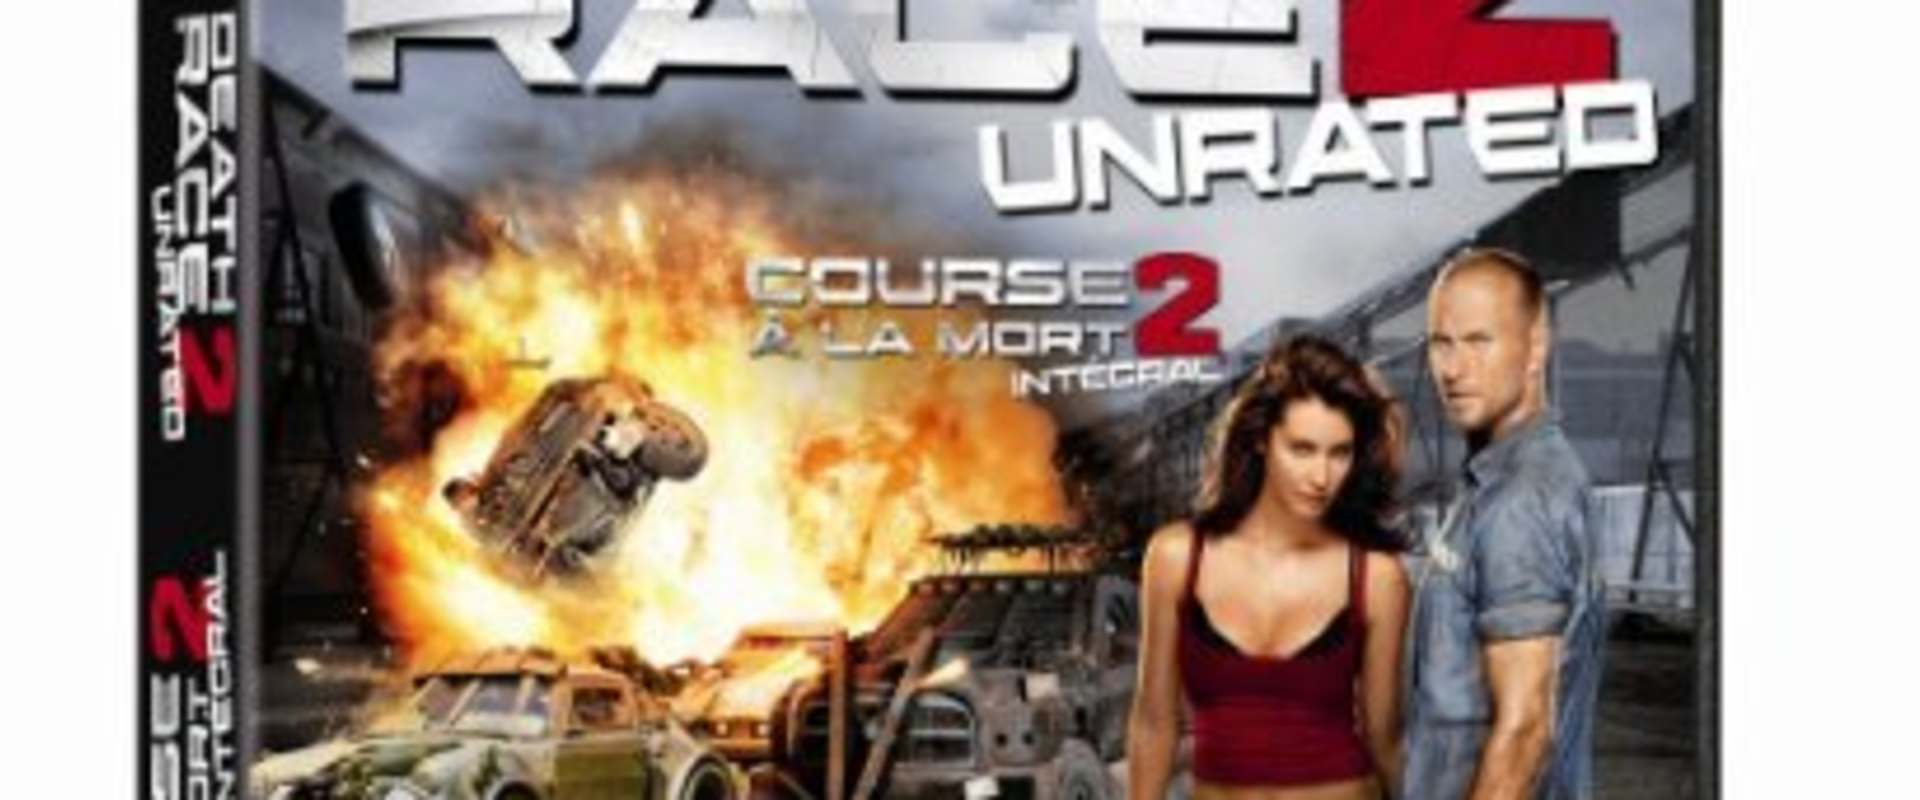 Death Race 2 background 2